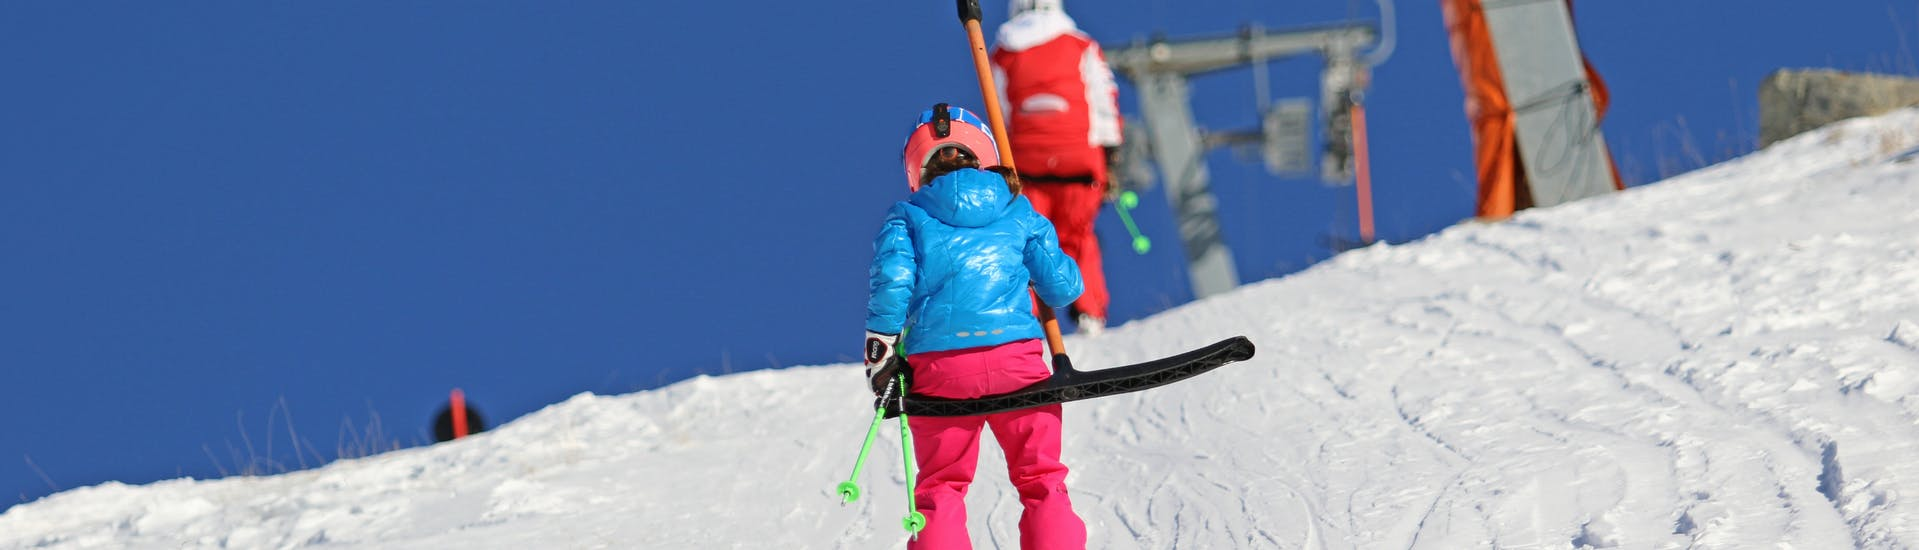 Kids Ski Lessons (4-7 y.) for Beginners with Skischule Pfunds - Hero image